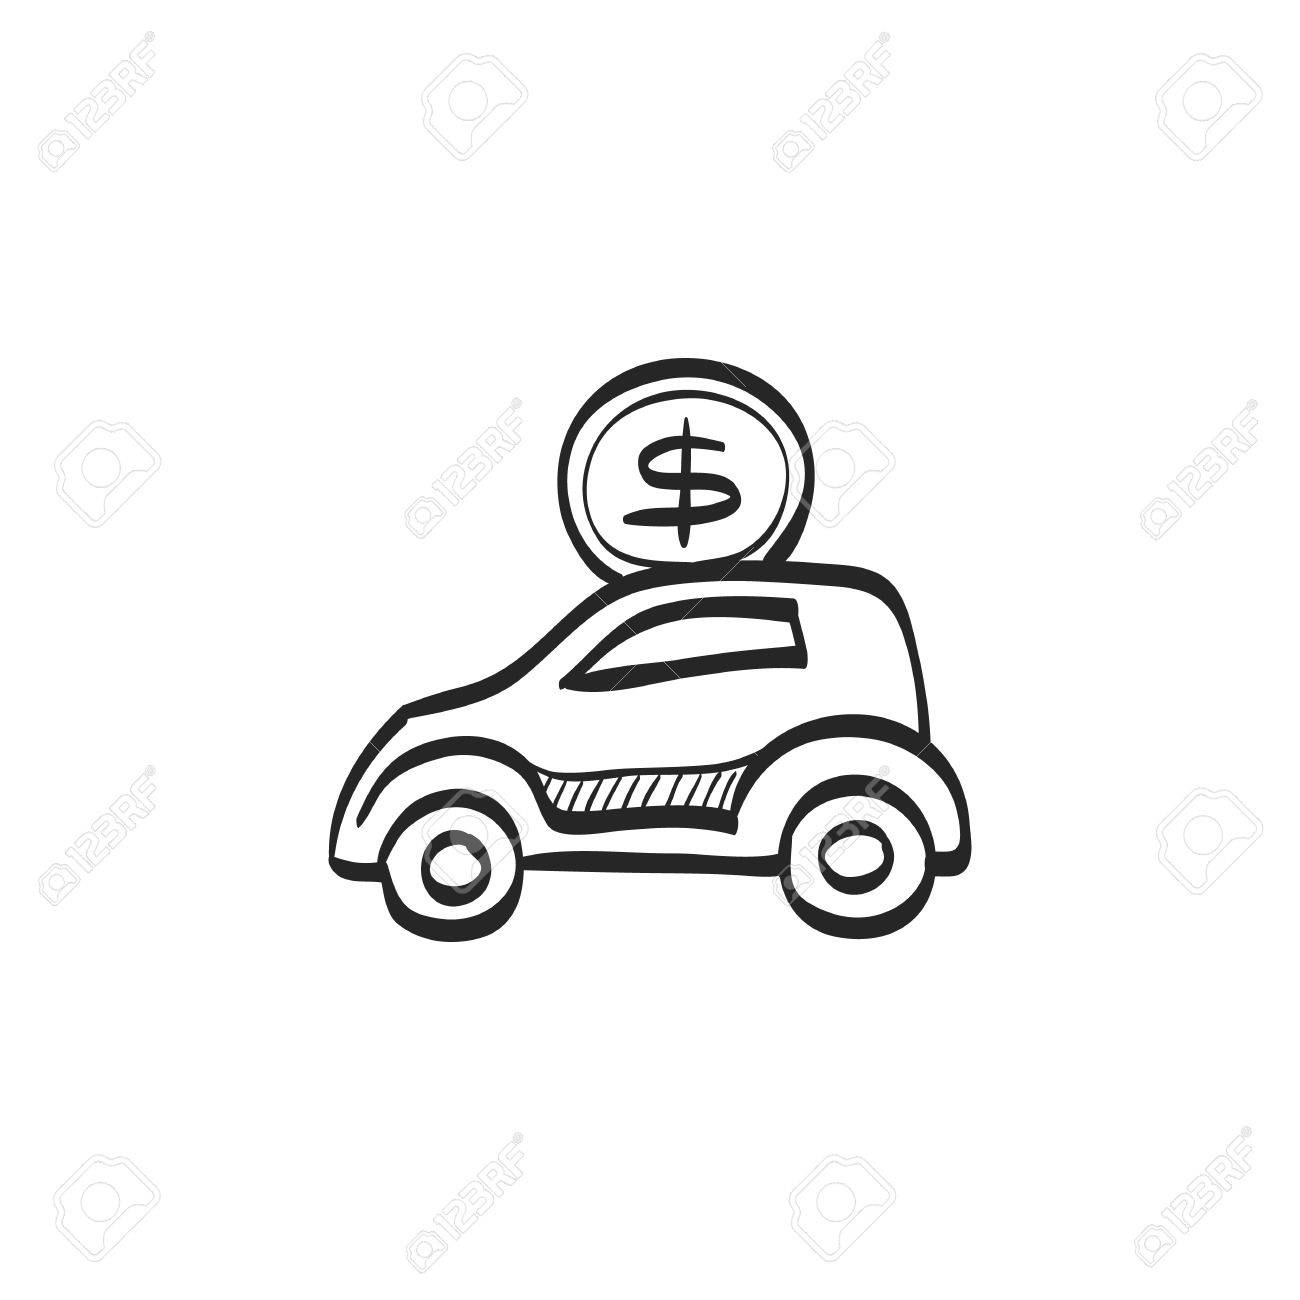 1300x1300 Car Piggy Bank Icon In Doodle Sketch Lines. Saving Kids Banking